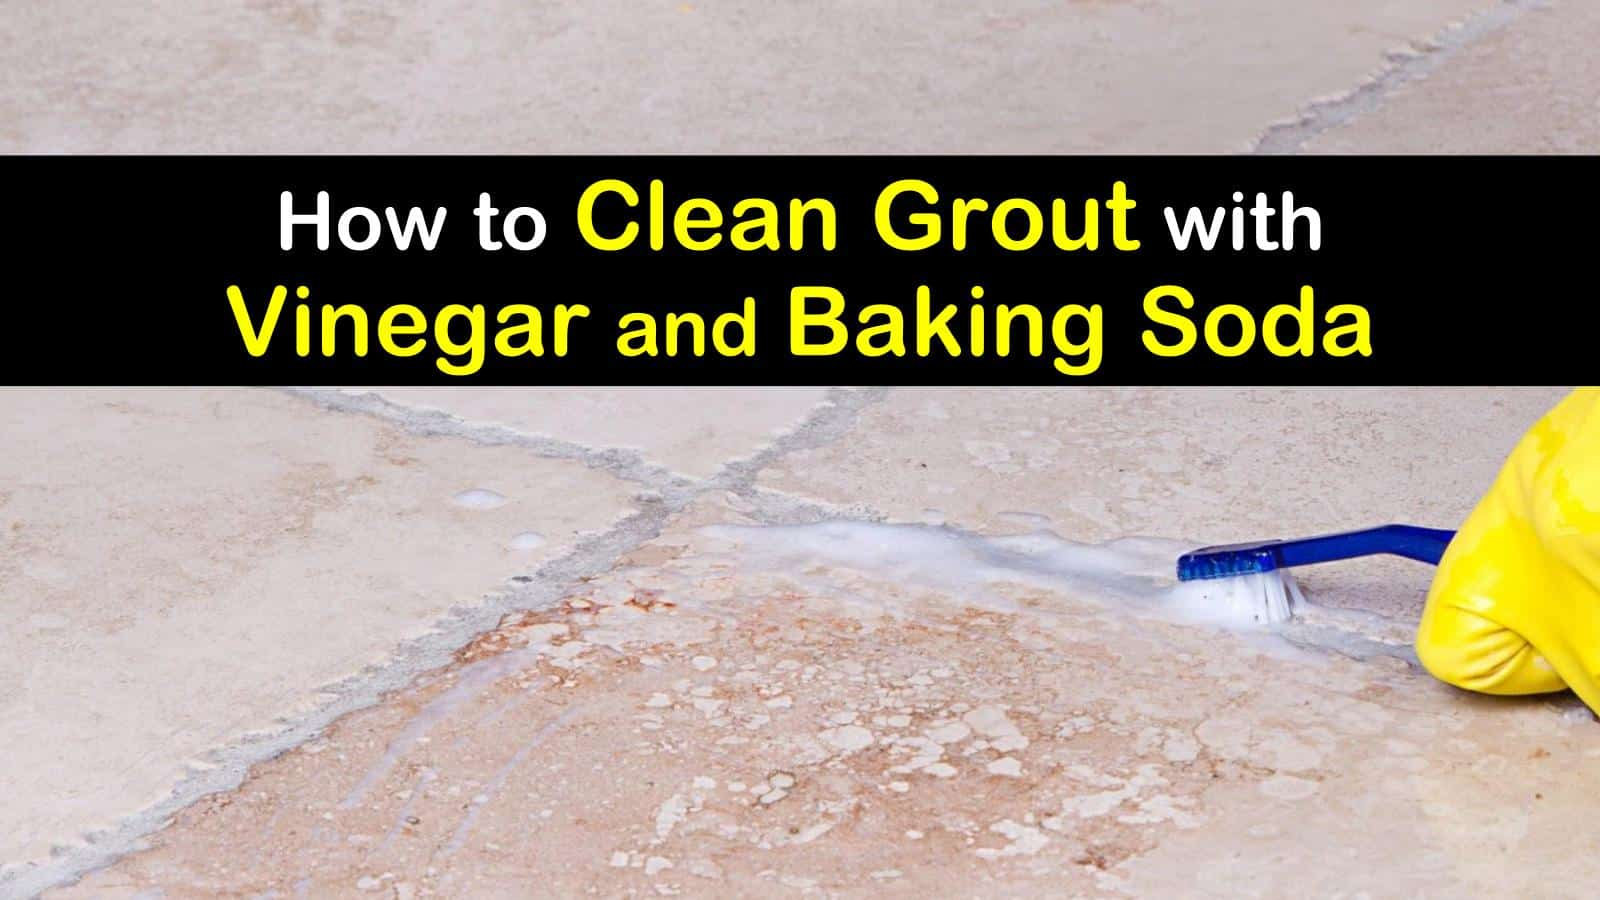 How To Clean Grout With Vinegar And Baking Soda